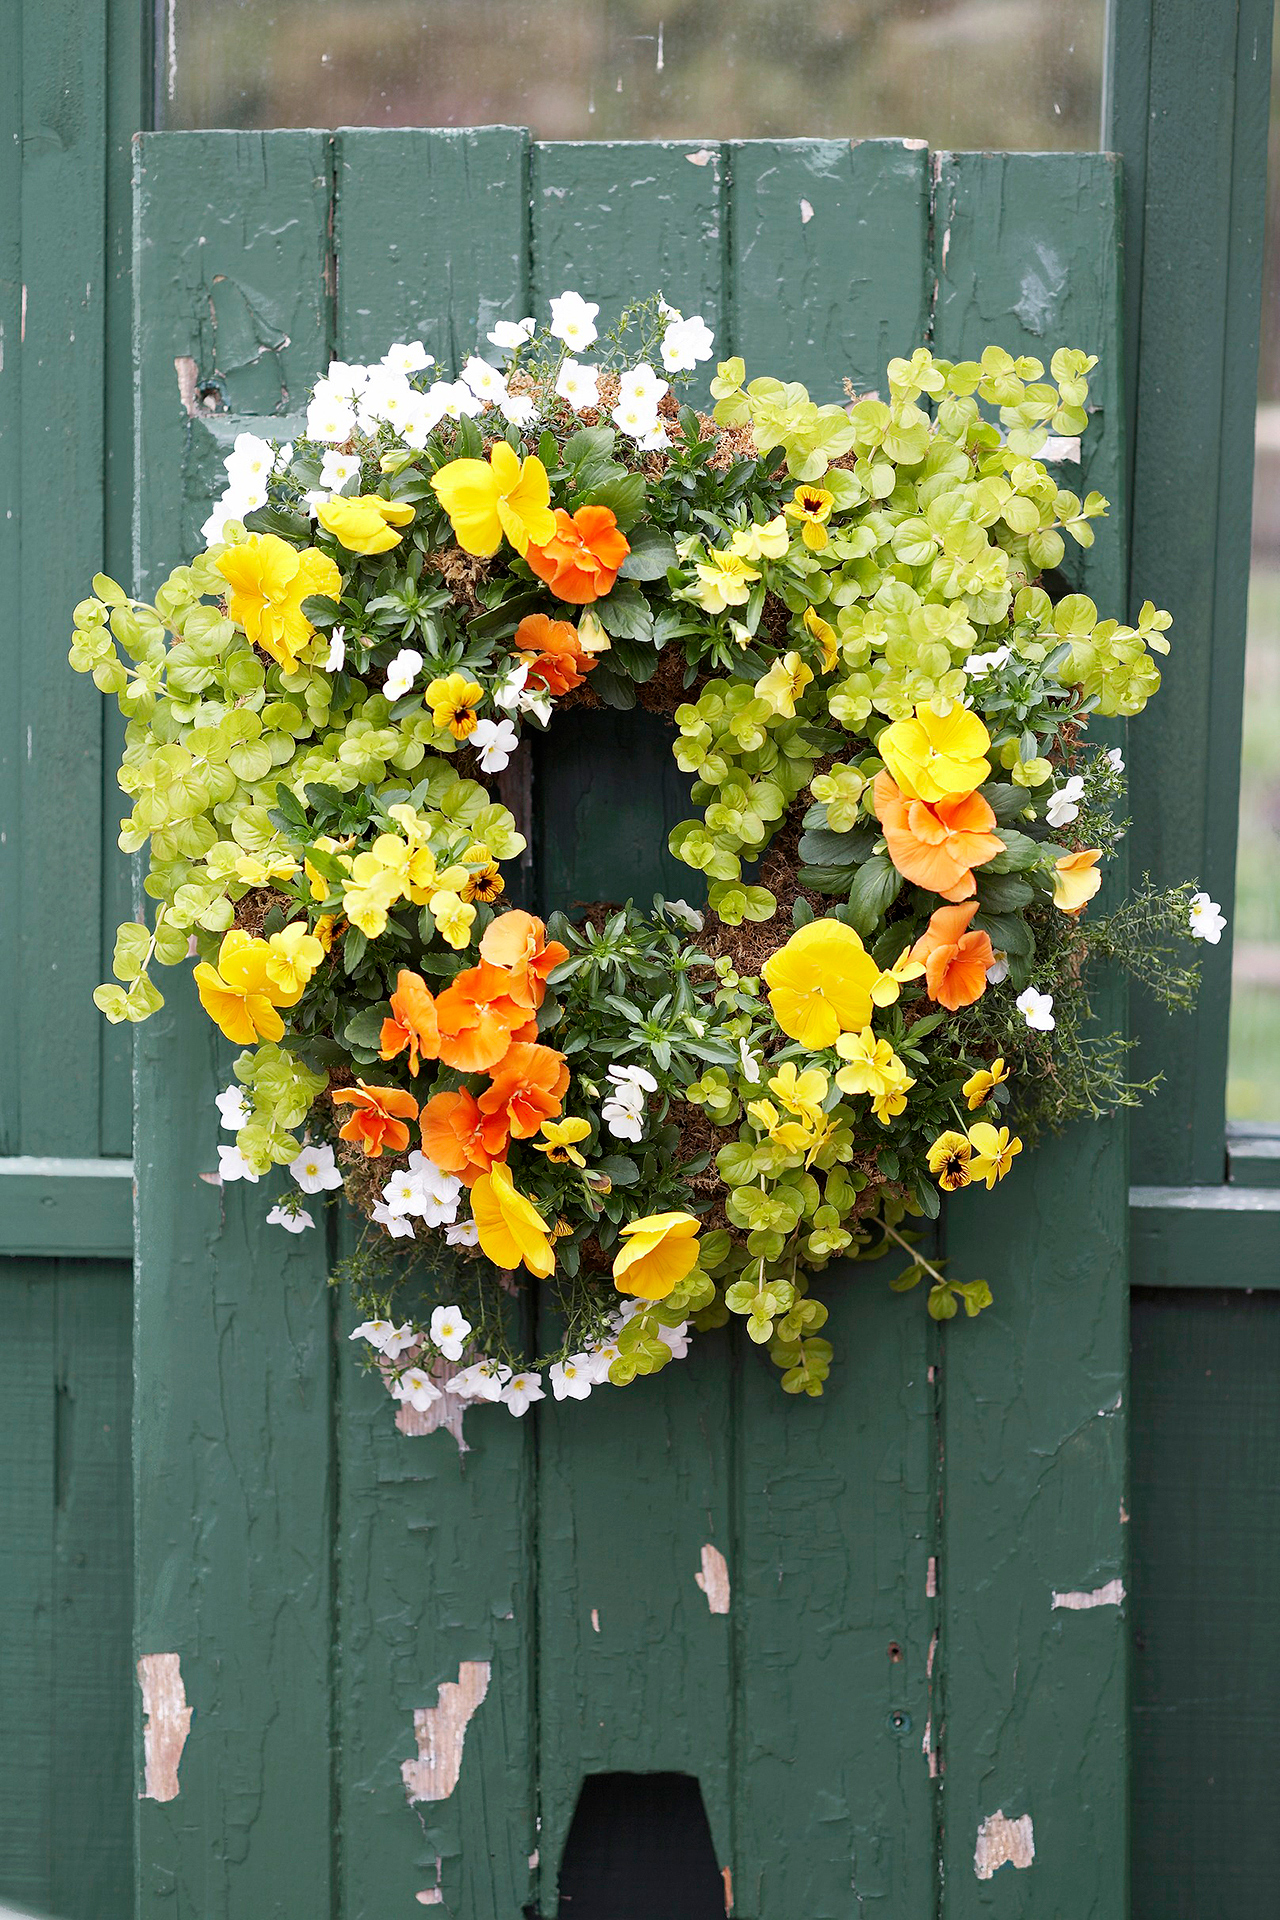 How to Make a Flowering Living Wreath